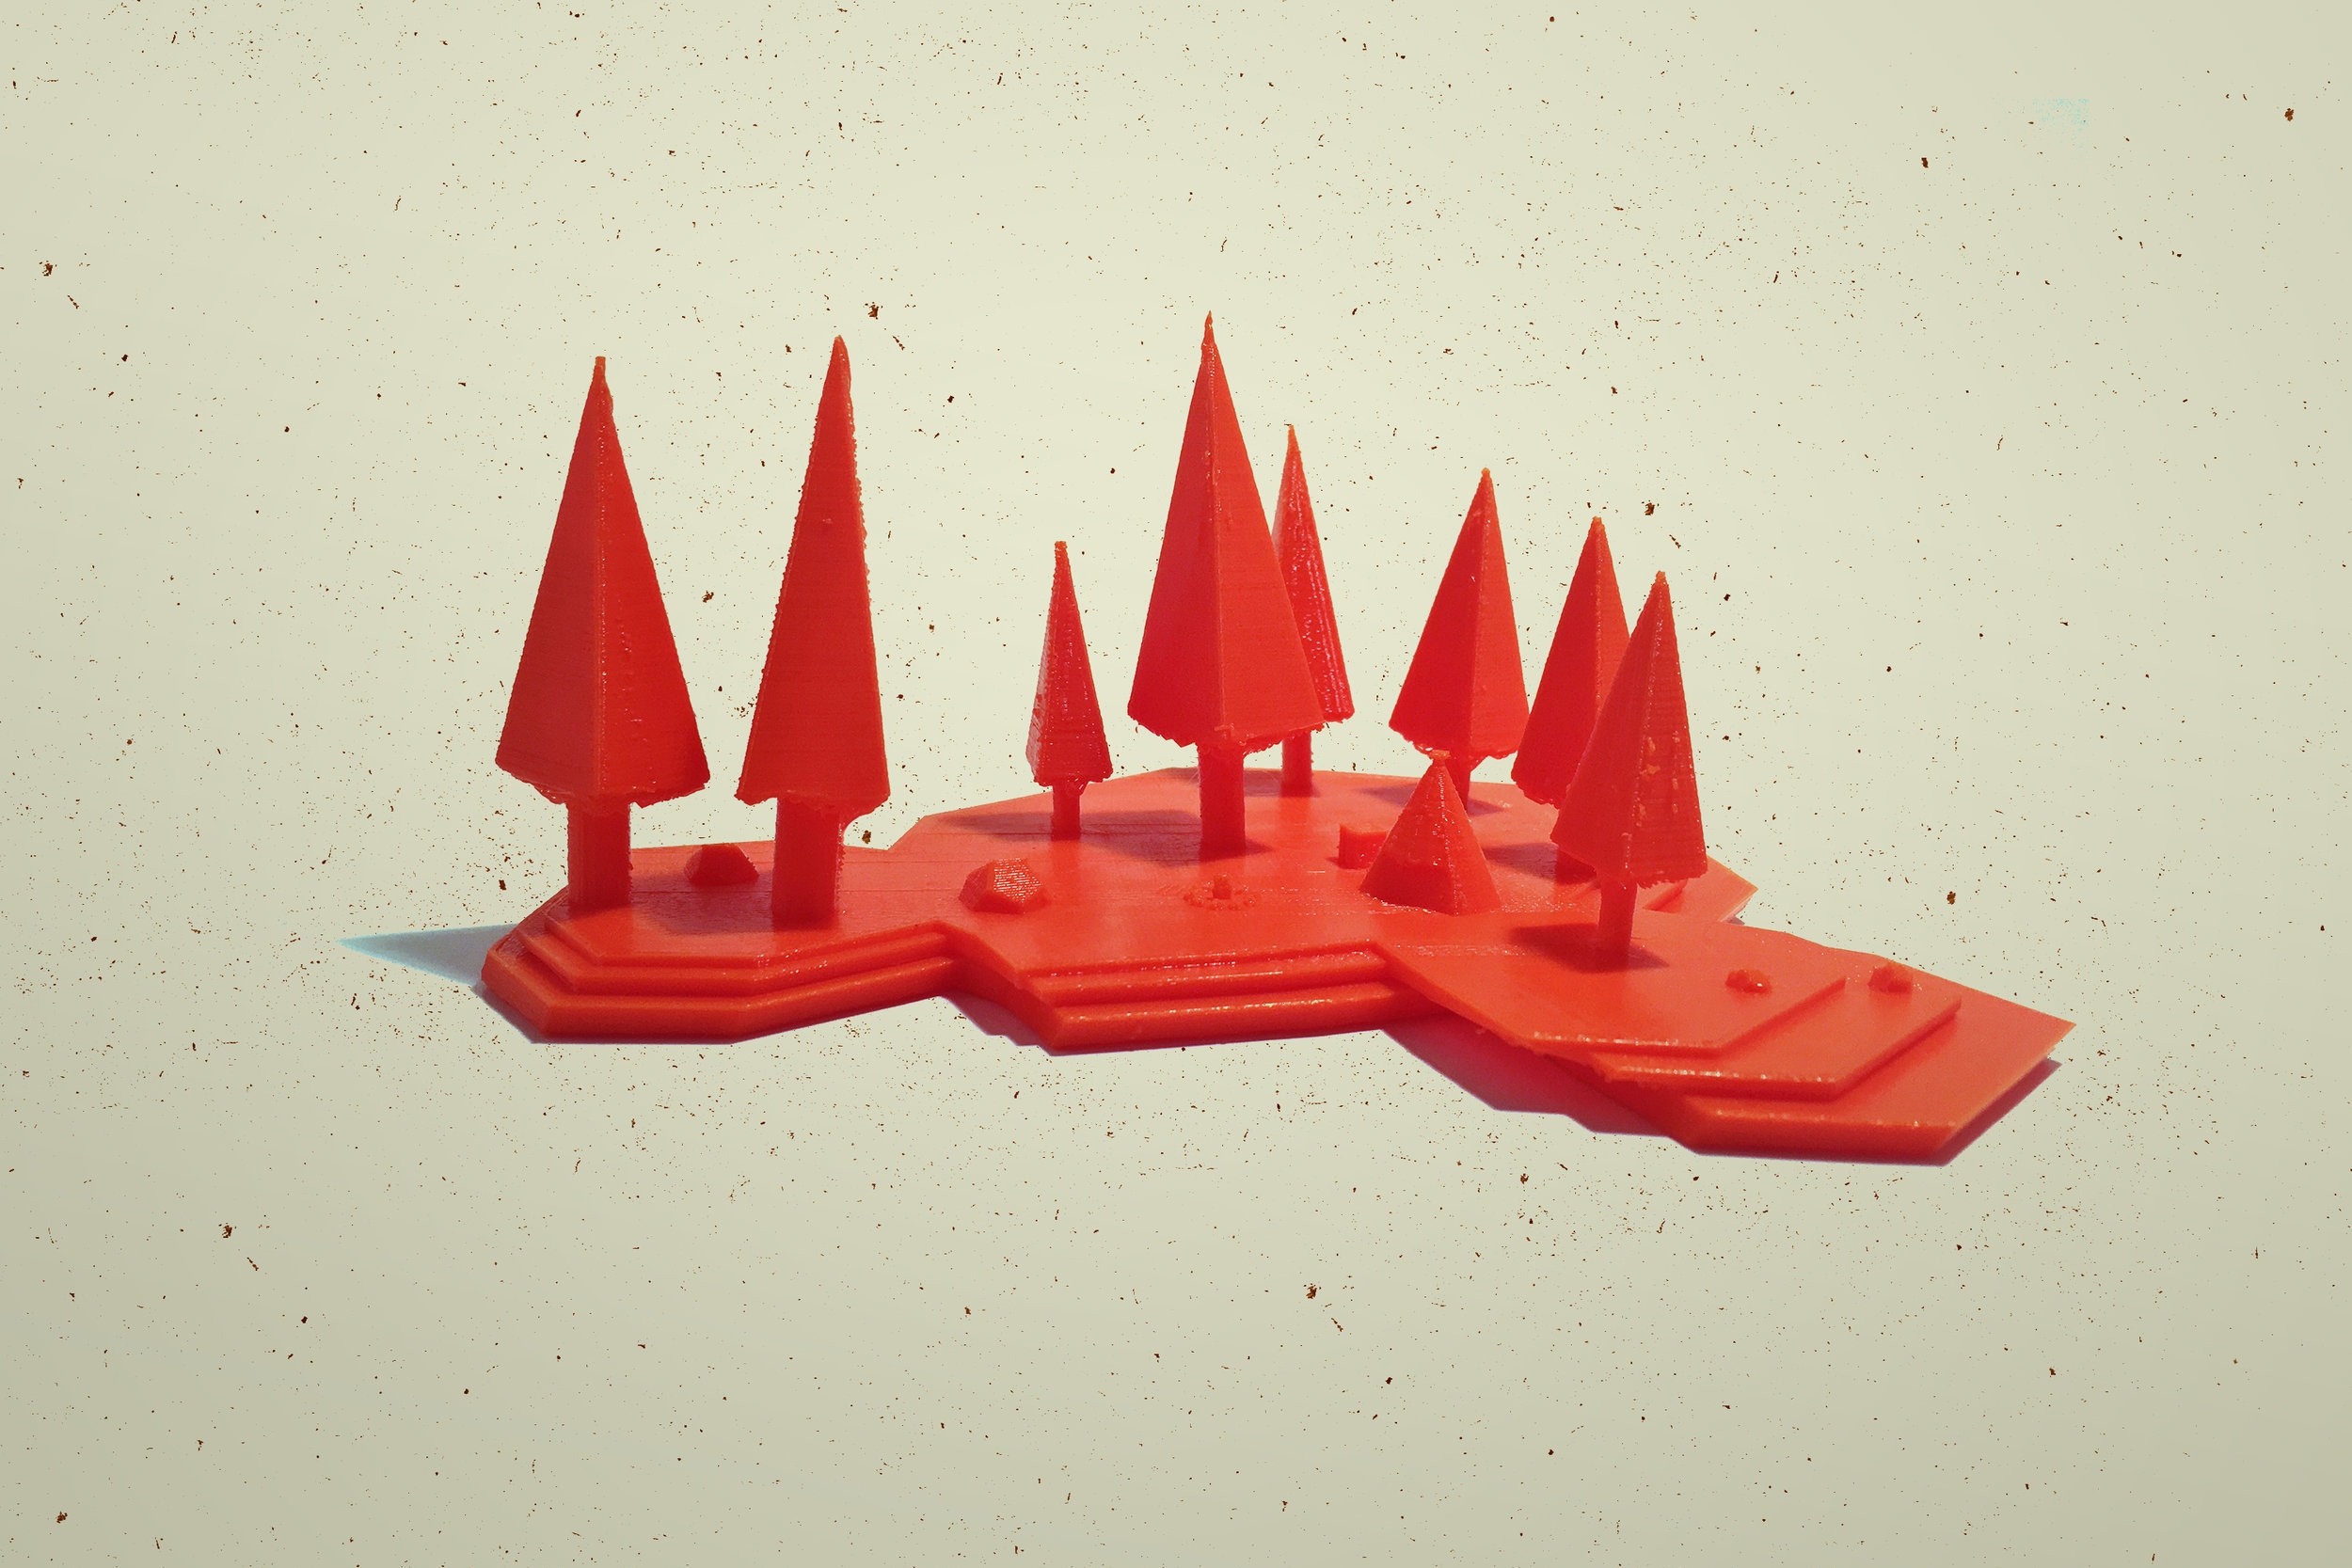 3D Print Model of the Camp